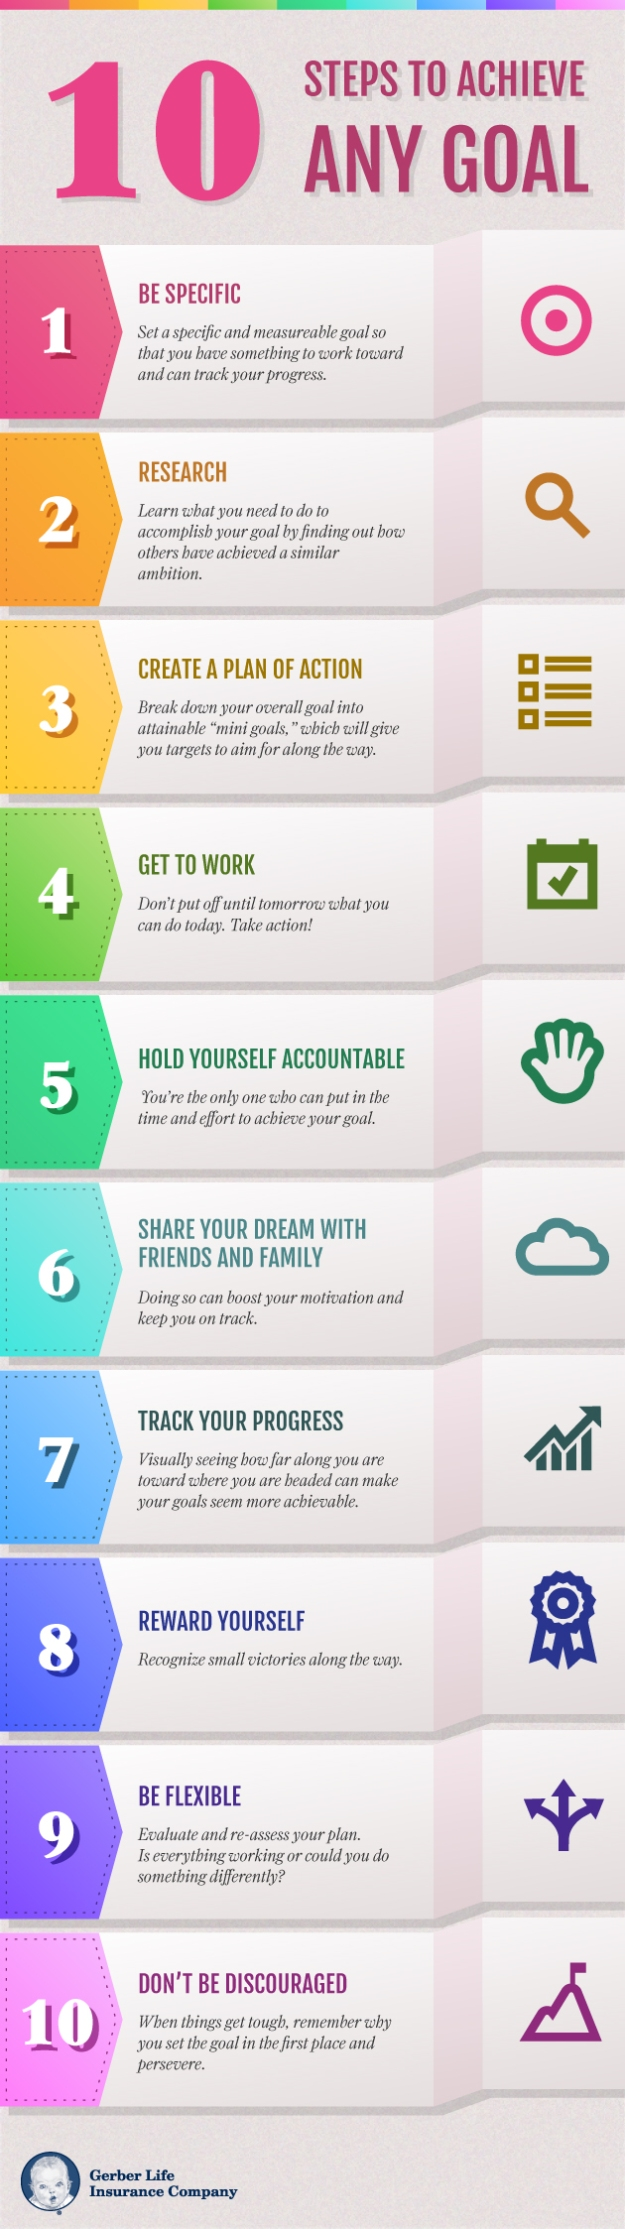 10 steps to achieve any goals